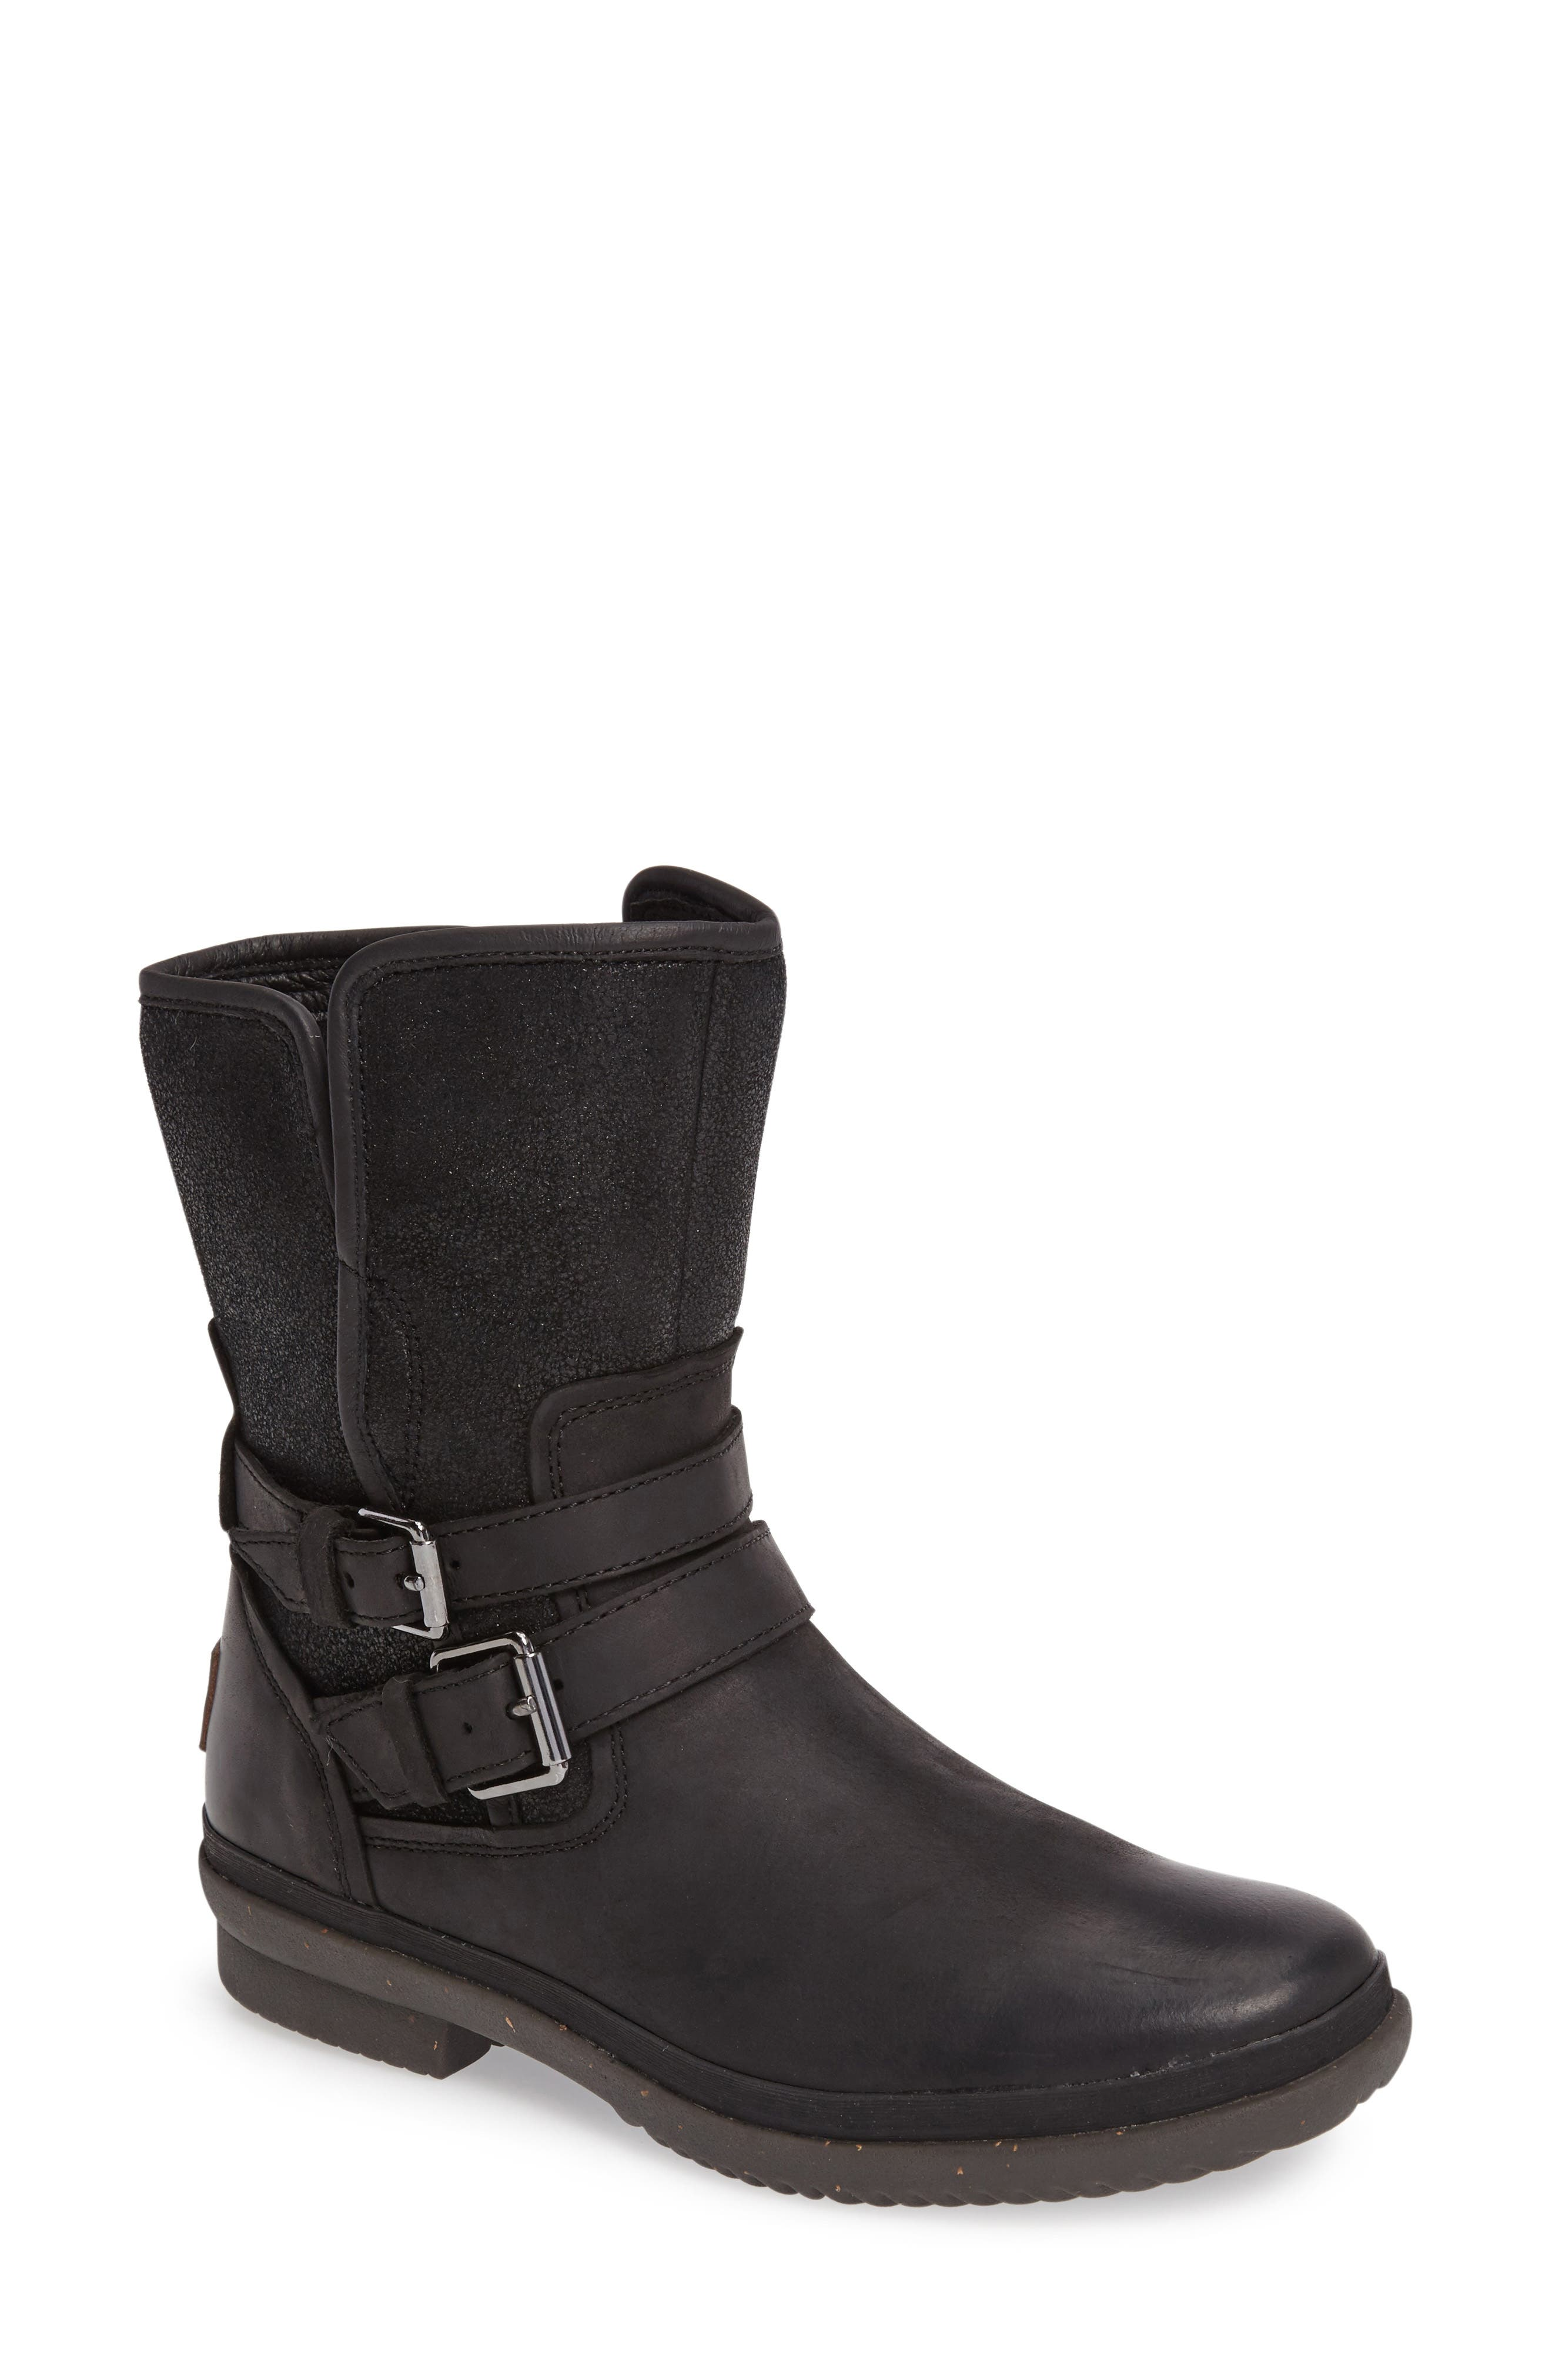 UGG Simmens Genuine Shearling Lined Waterproof Leather Boot